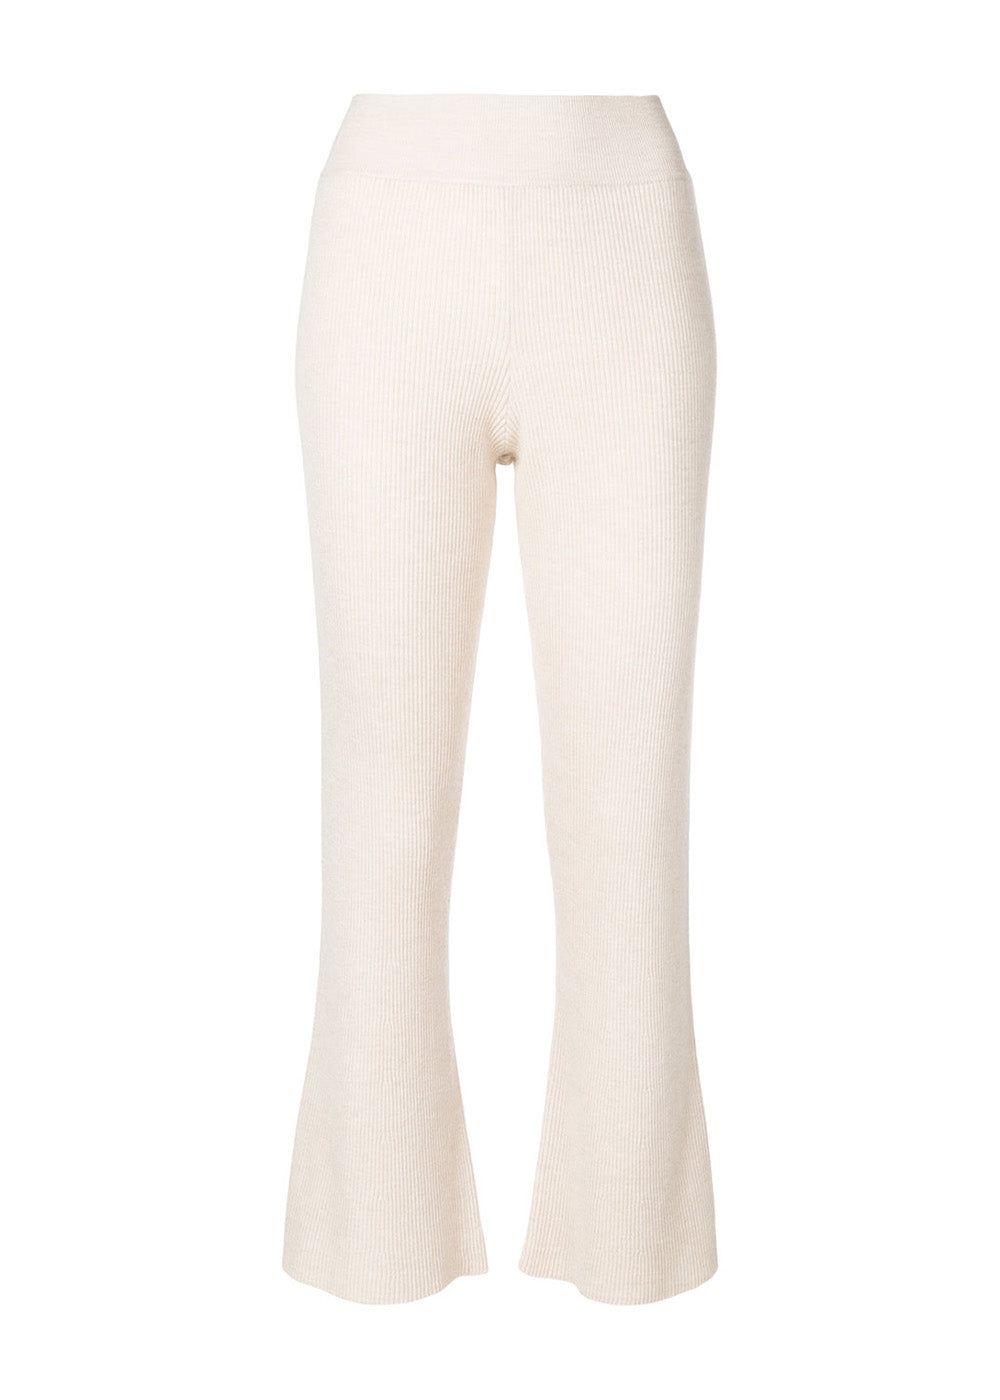 Tereza Knit Trousers. Hover to zoom